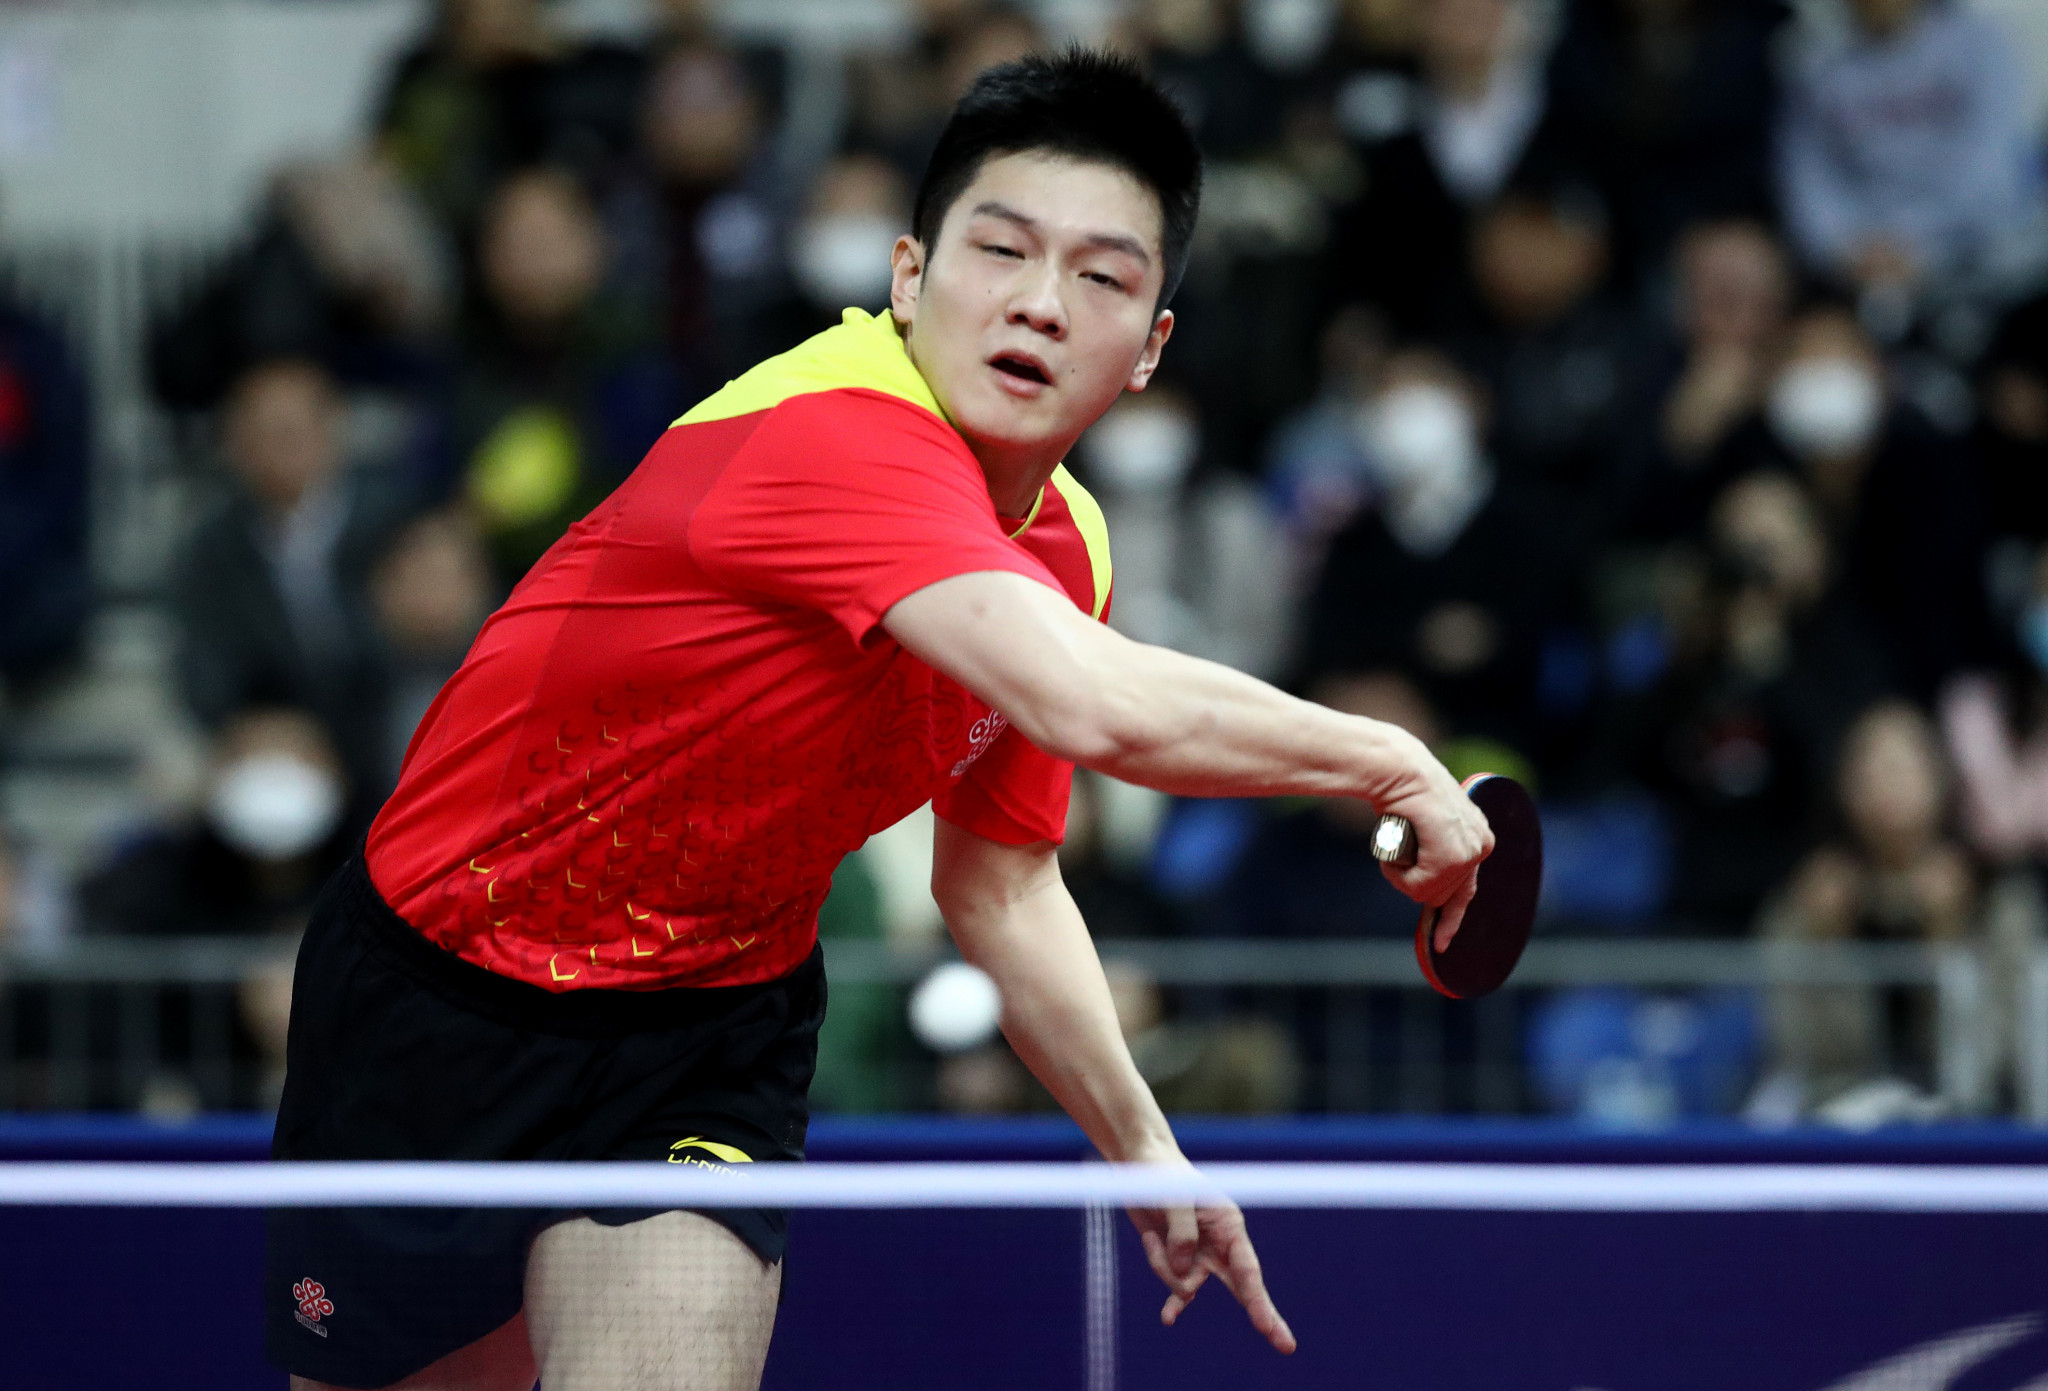 China's Fan Zhendong remains on course to retain the men's singles title ©Getty Images